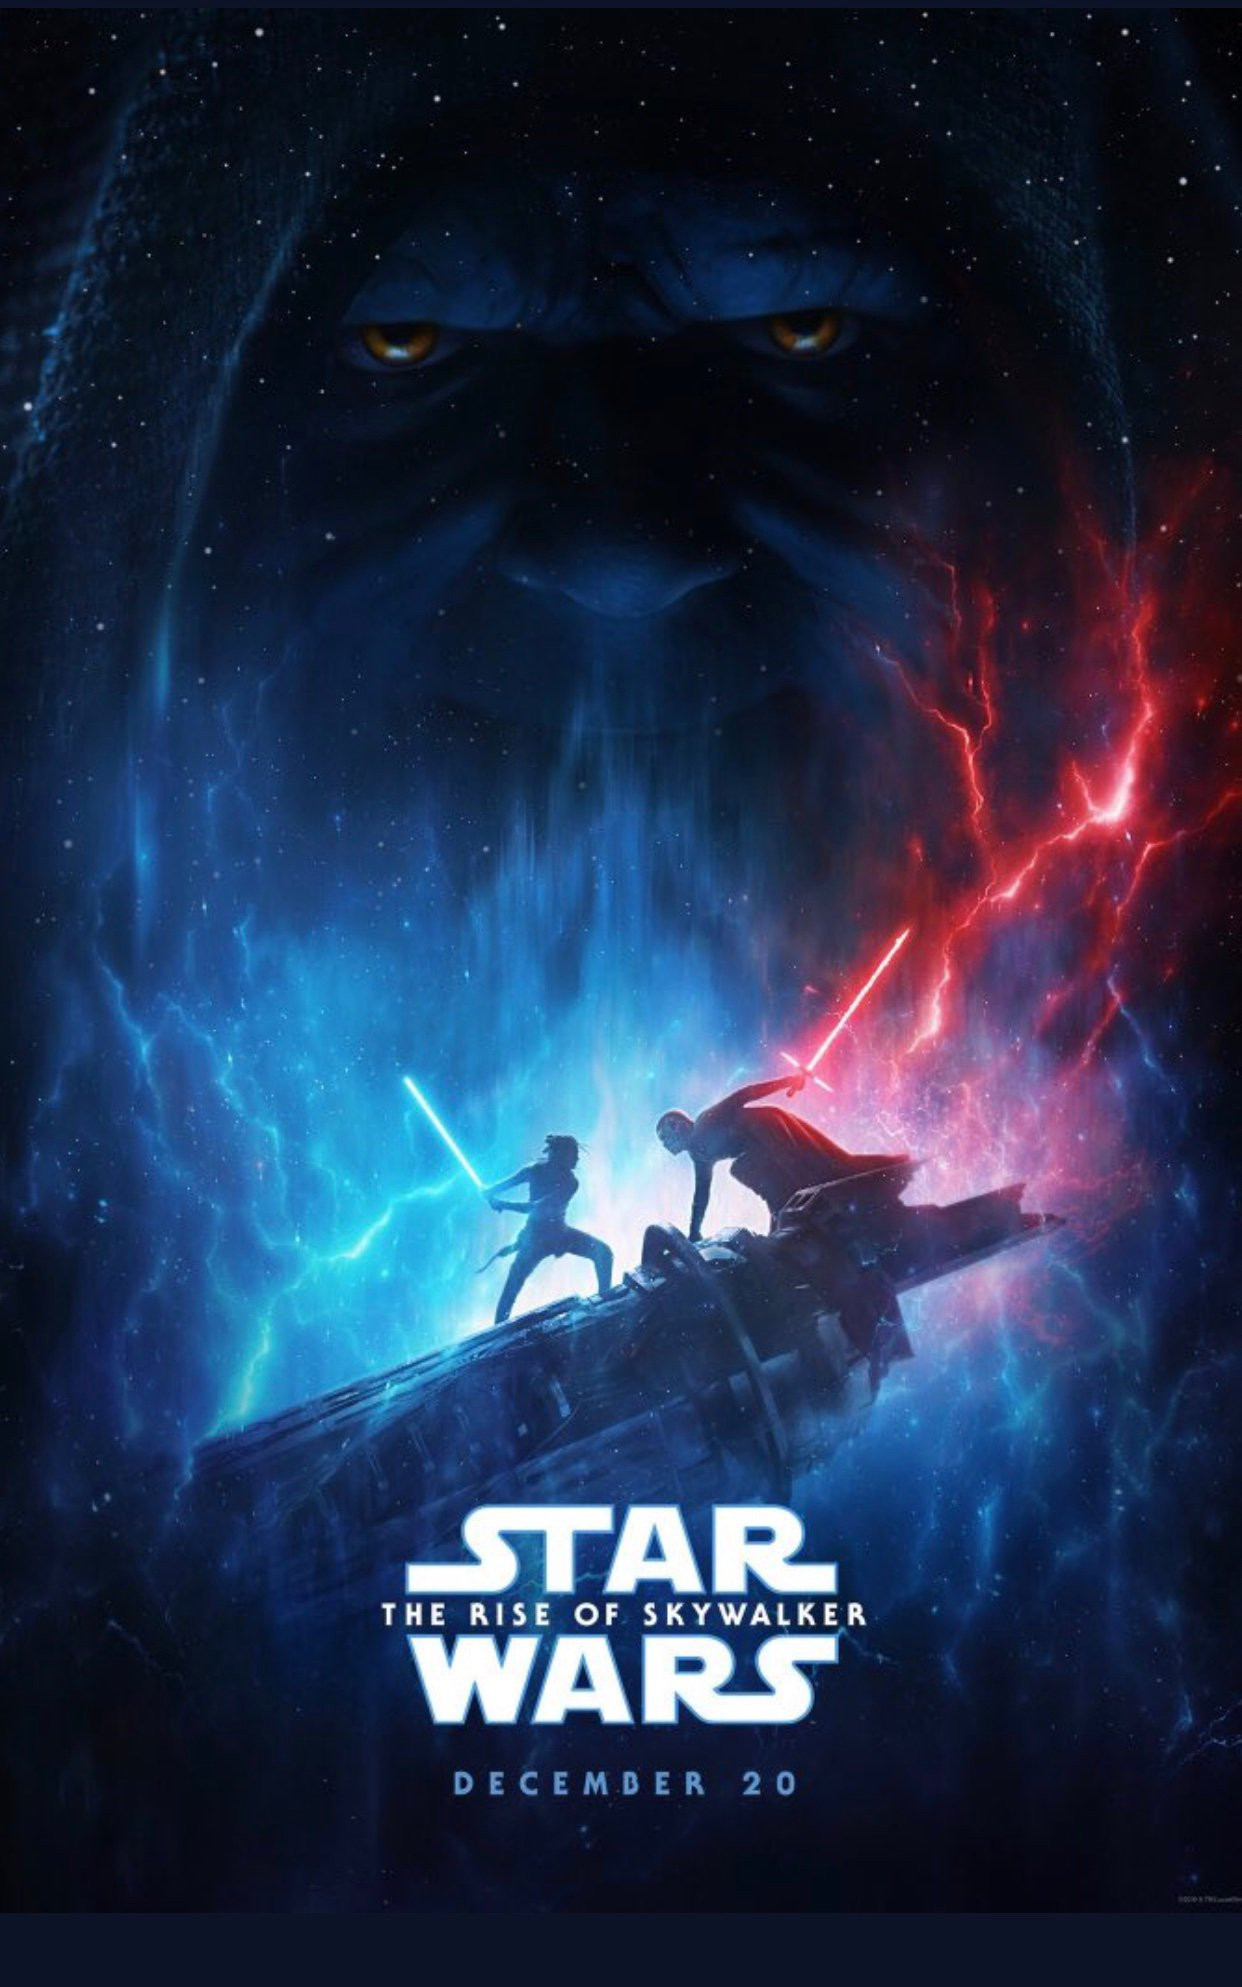 Star Wars: The Rise of Skywalker D23 poster